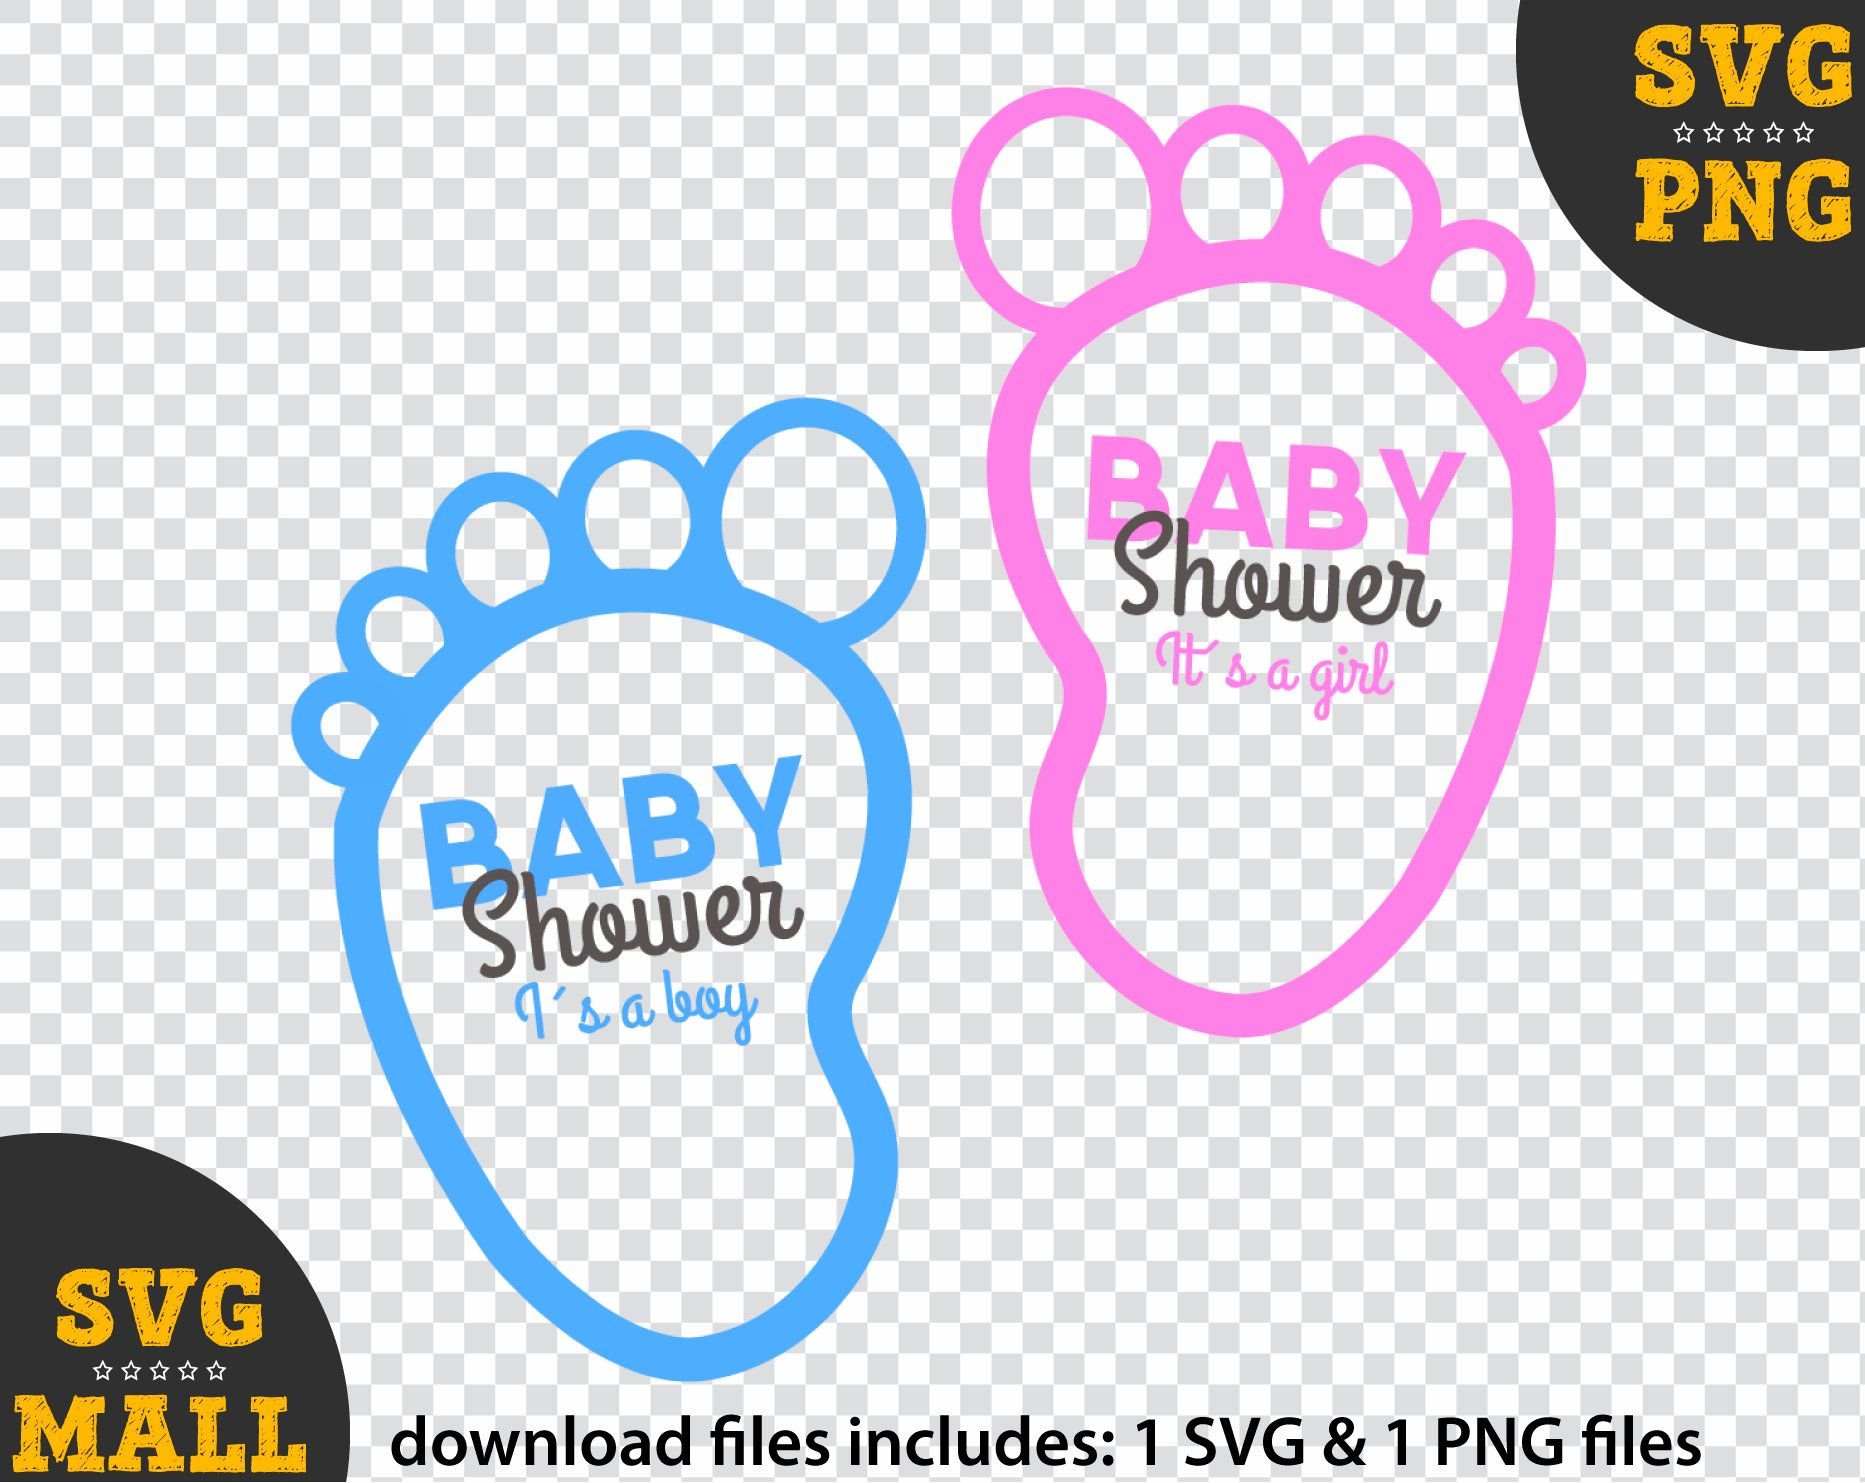 Twins Children Svg - Baby Shower Svg - Svg For